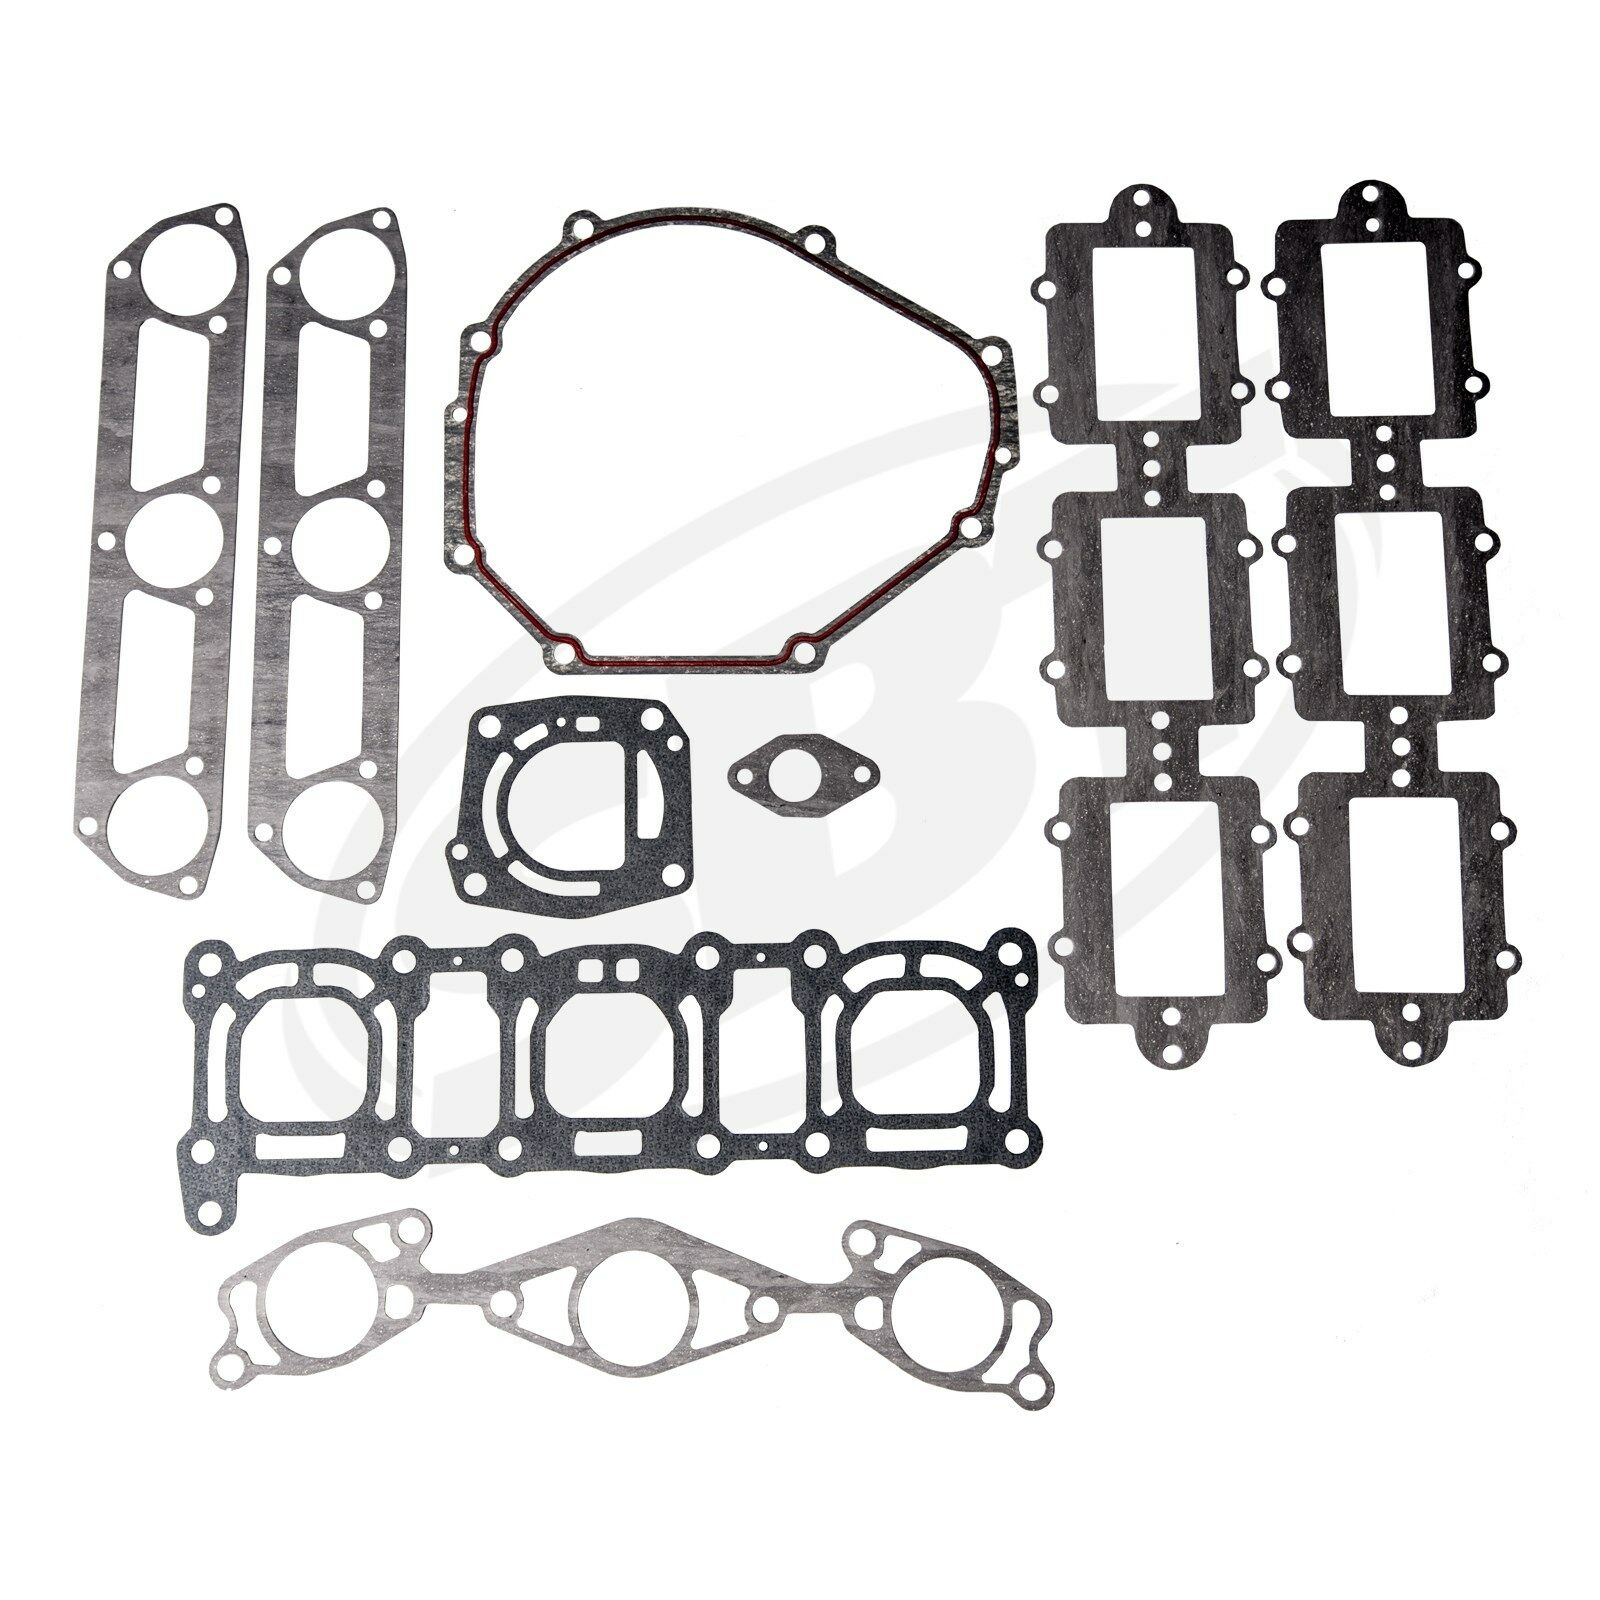 Yamaha Installation Gasket Kit 1995-1996 WaveRaider 1000